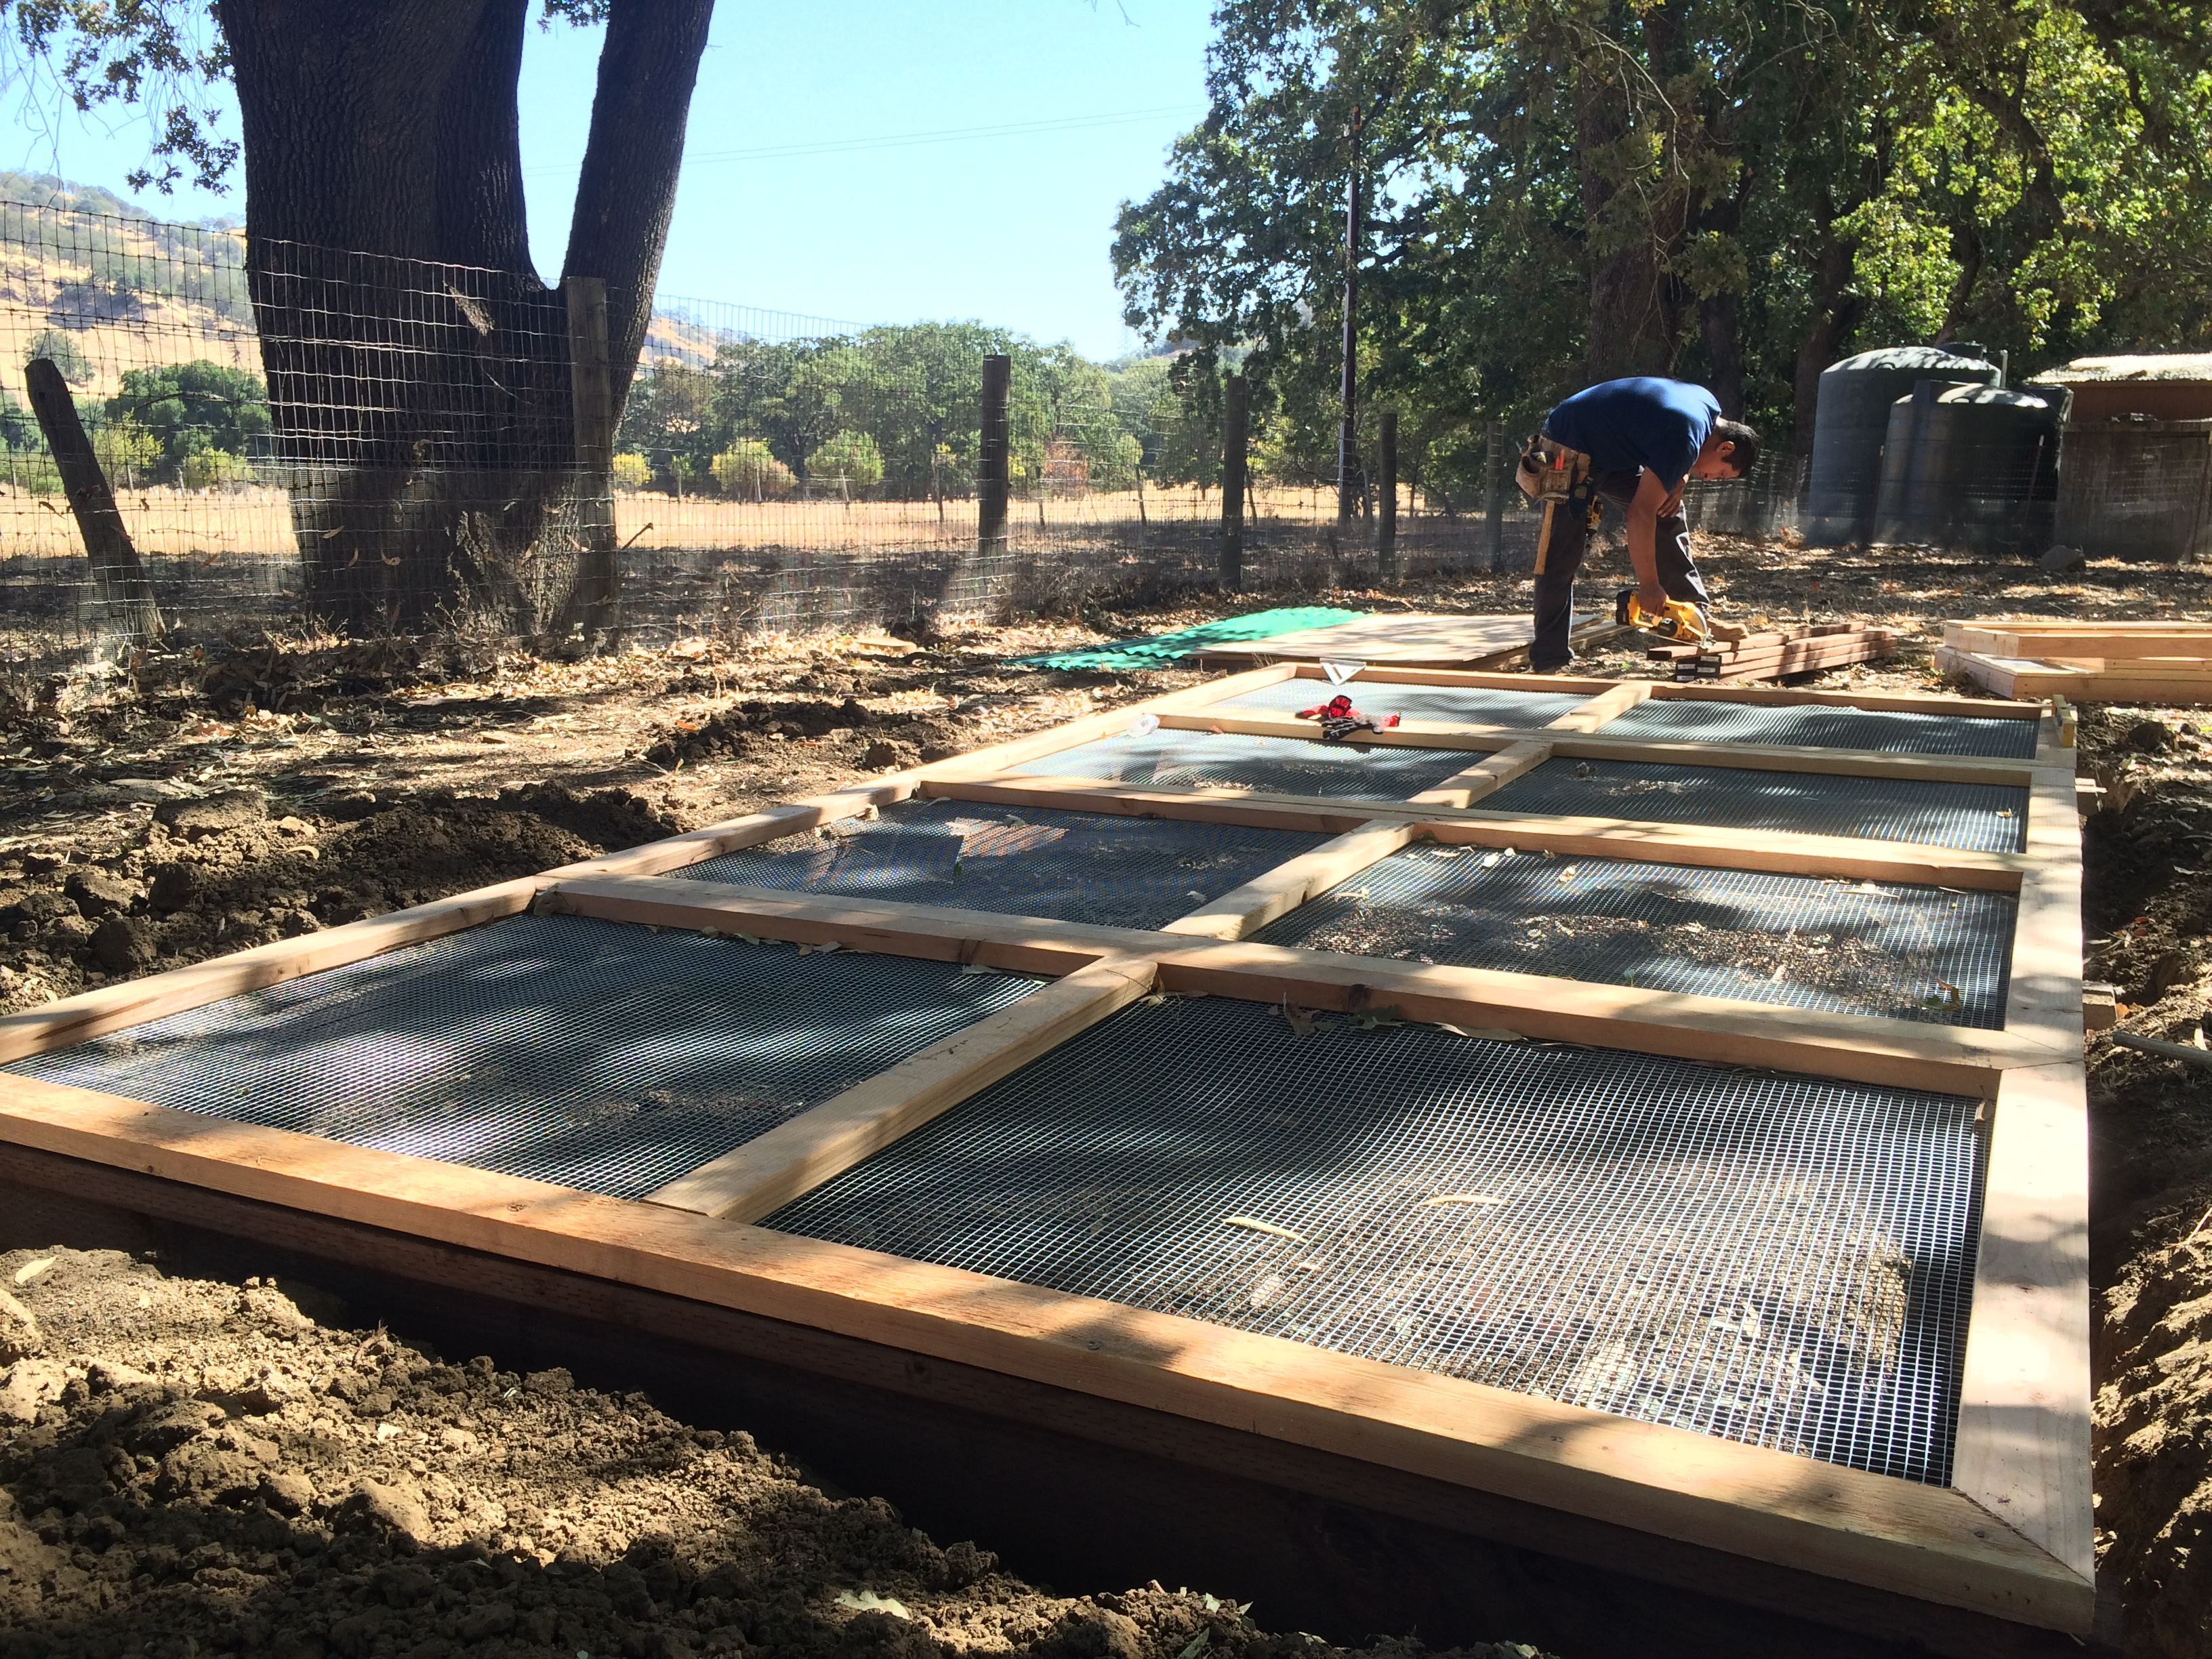 Predator & rodent-proof panels attached to treated lumber base